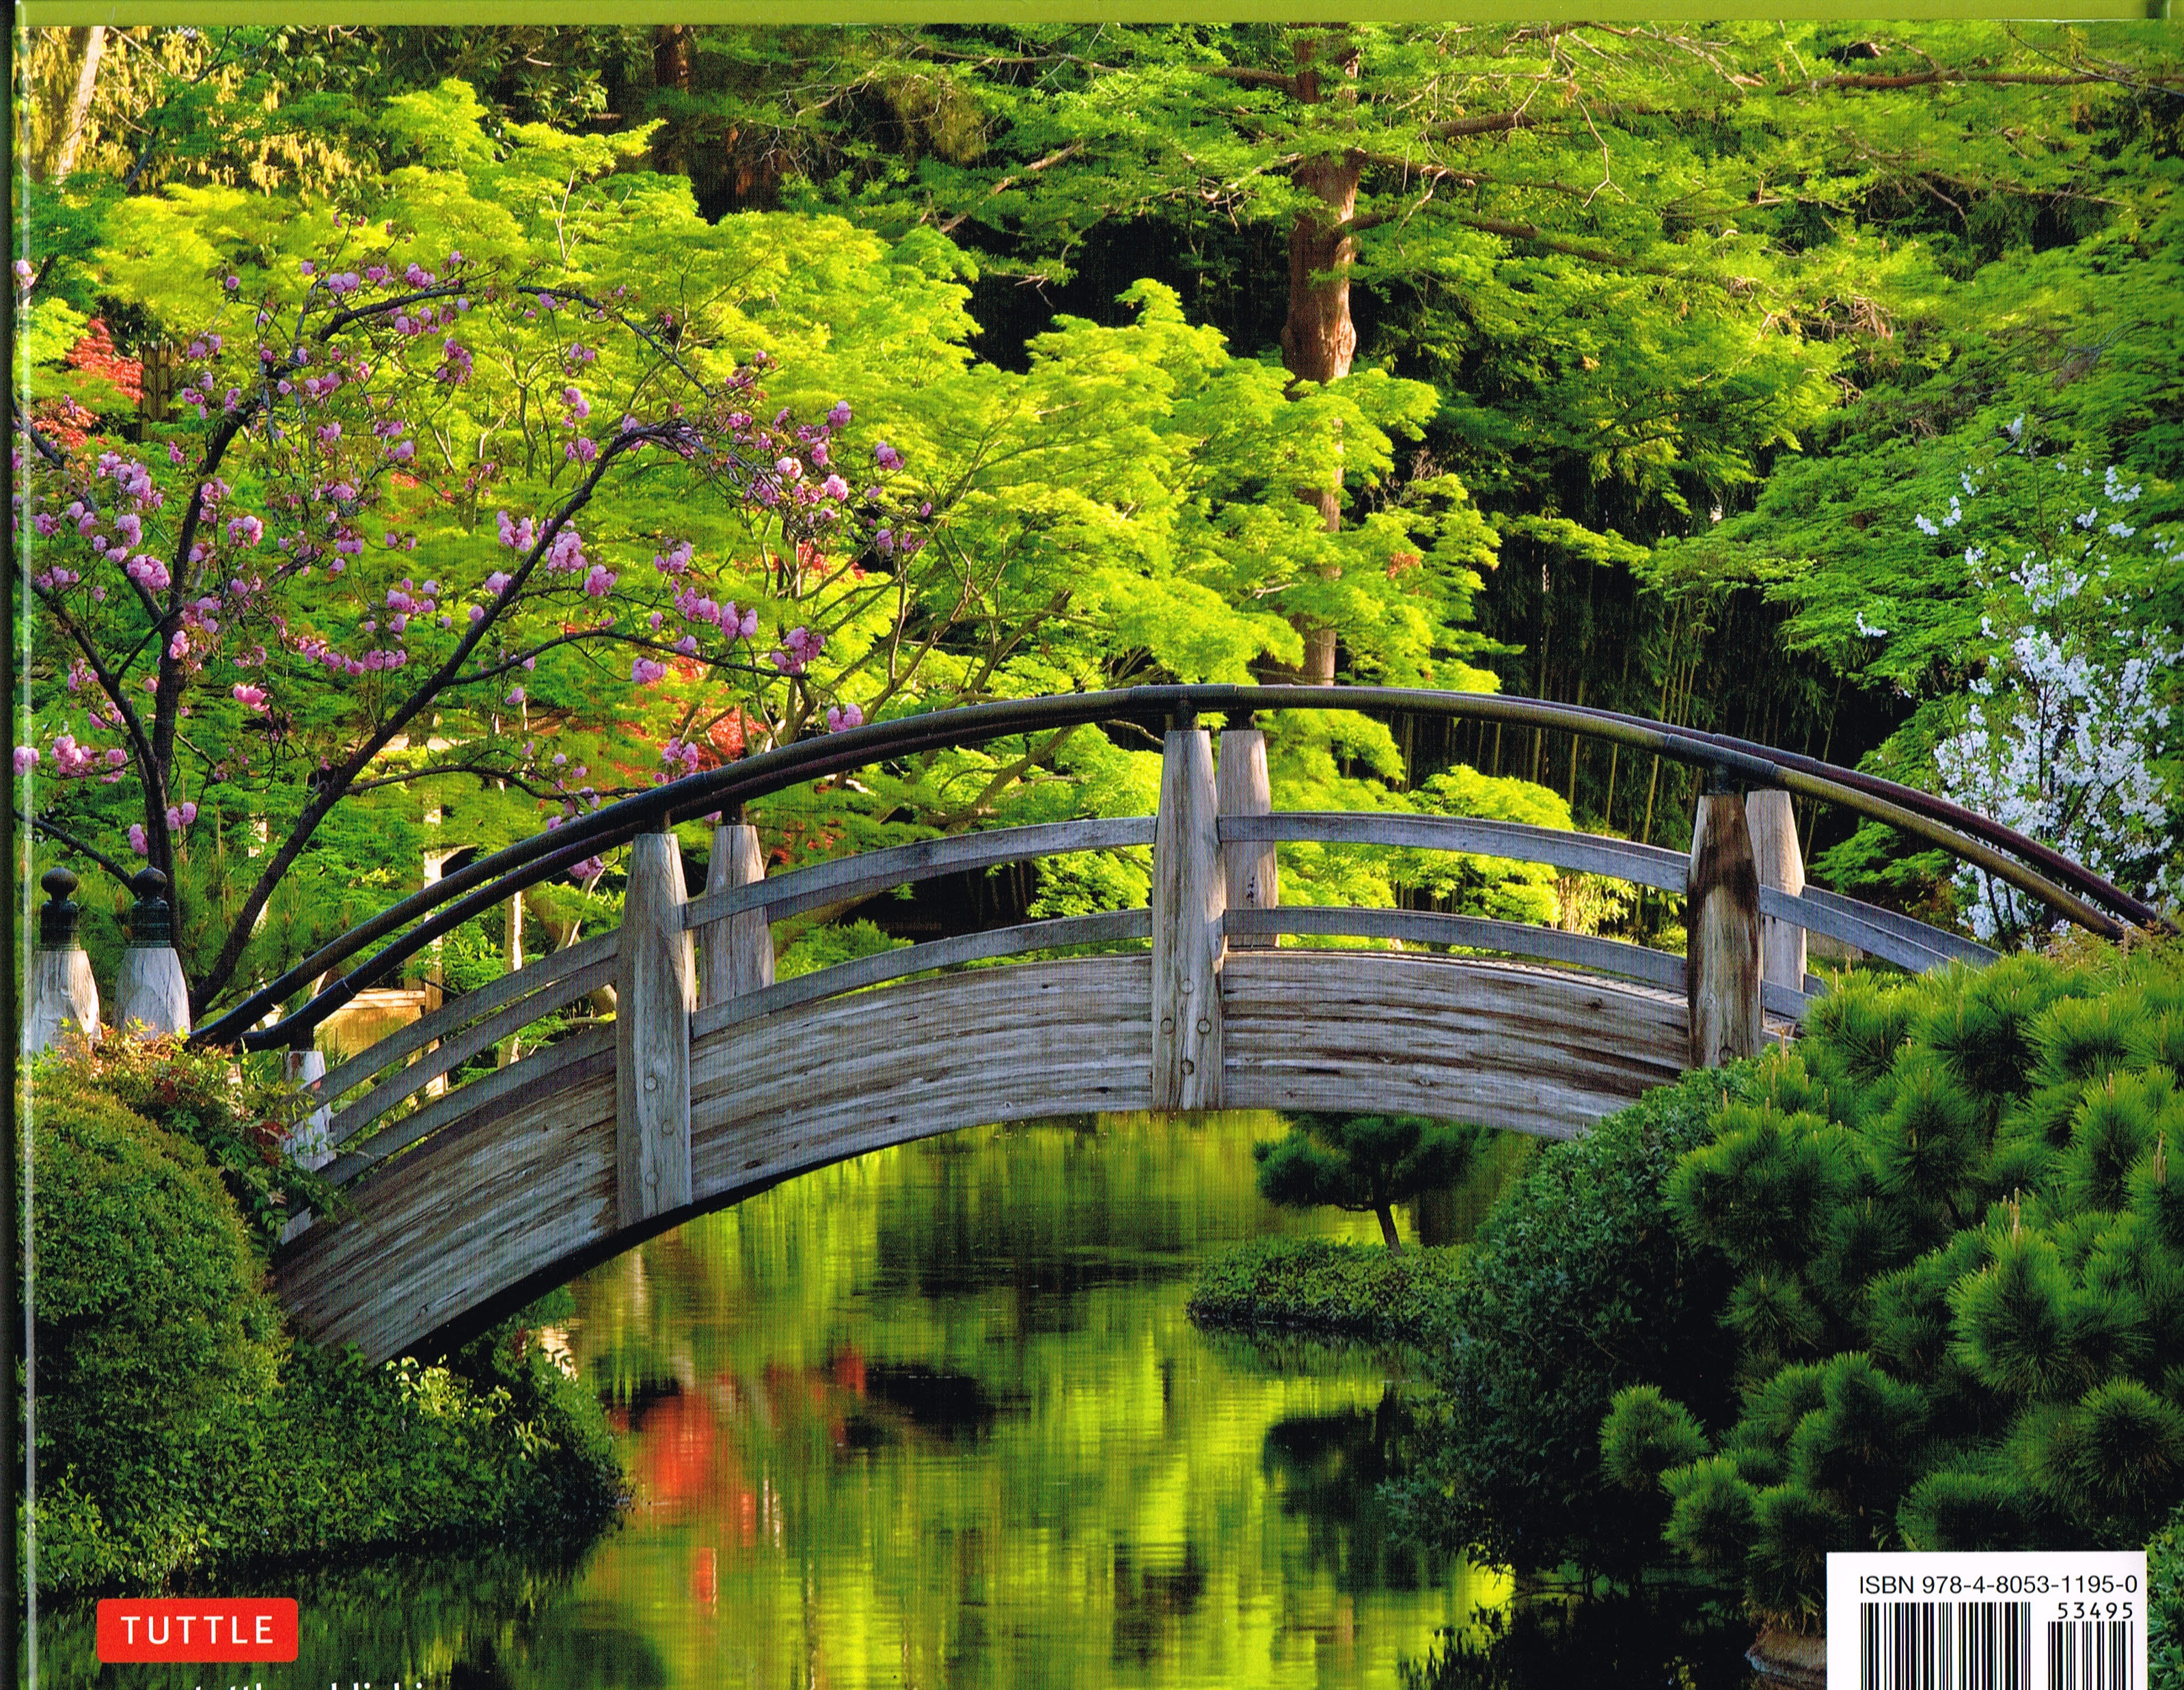 Awesome Back Cover Photo By David Cobb Of The Japanese Garden At Fort Worth Botanic  Garden In